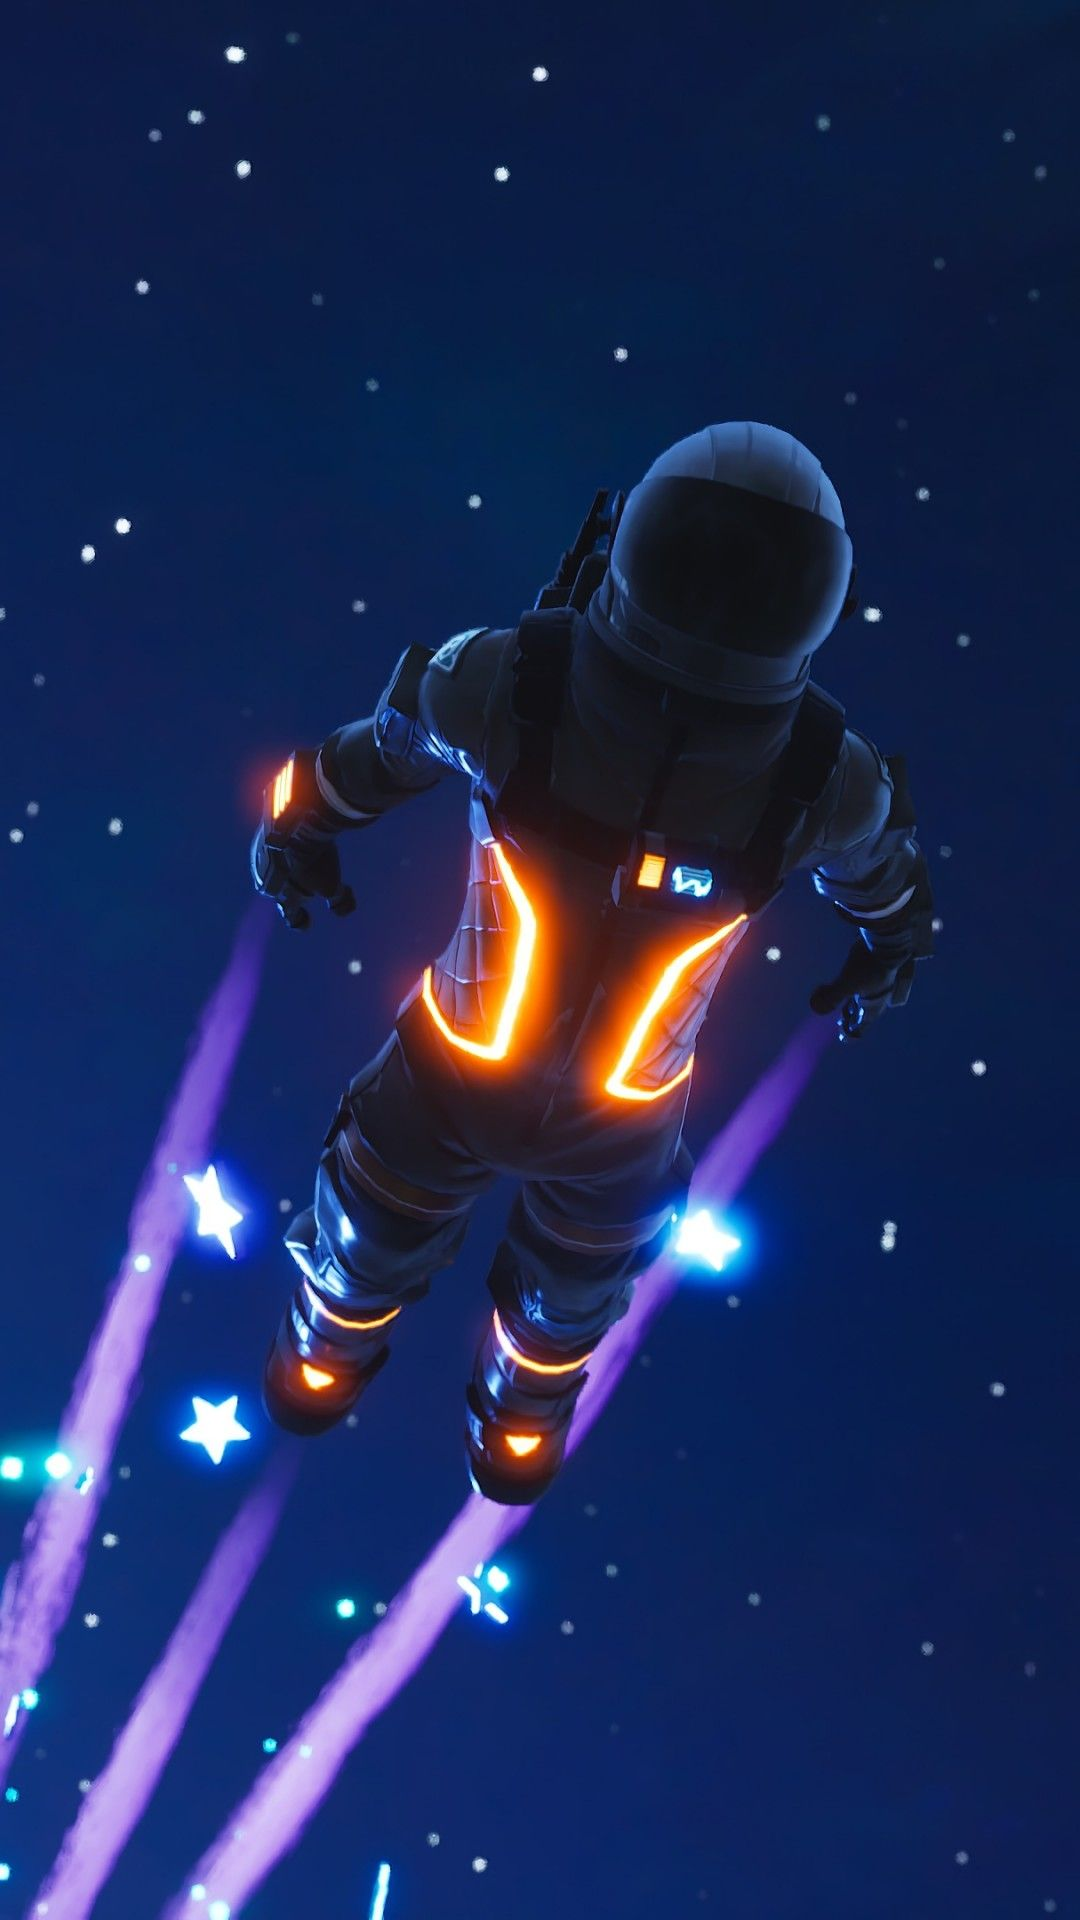 Fortnite Season 8 Hd Iphone Wallpaper Hupages Download Iphone Wallpapers Mobile Wallpaper Hd Phone Backgrounds Fortnite